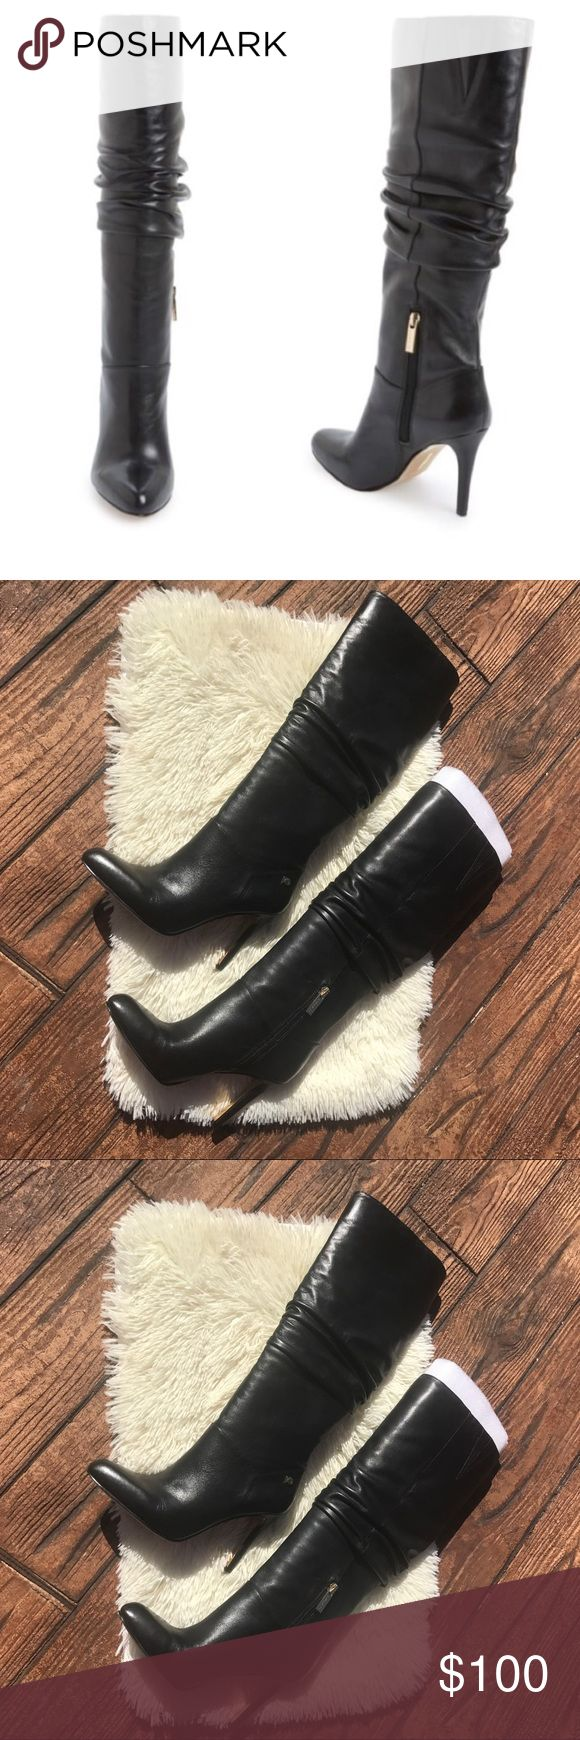 Nordstrom Black Boots🎉HUGE SALES Beautiful black boots, only wore once for an hour inside. No wear on actual boots just bottom of shoe. Gold hardware zipper up the side. Measurements upon request. Ships without box.   #blackboots #nordstrom #healboots #heals #boots Nordstrom Shoes Heeled Boots